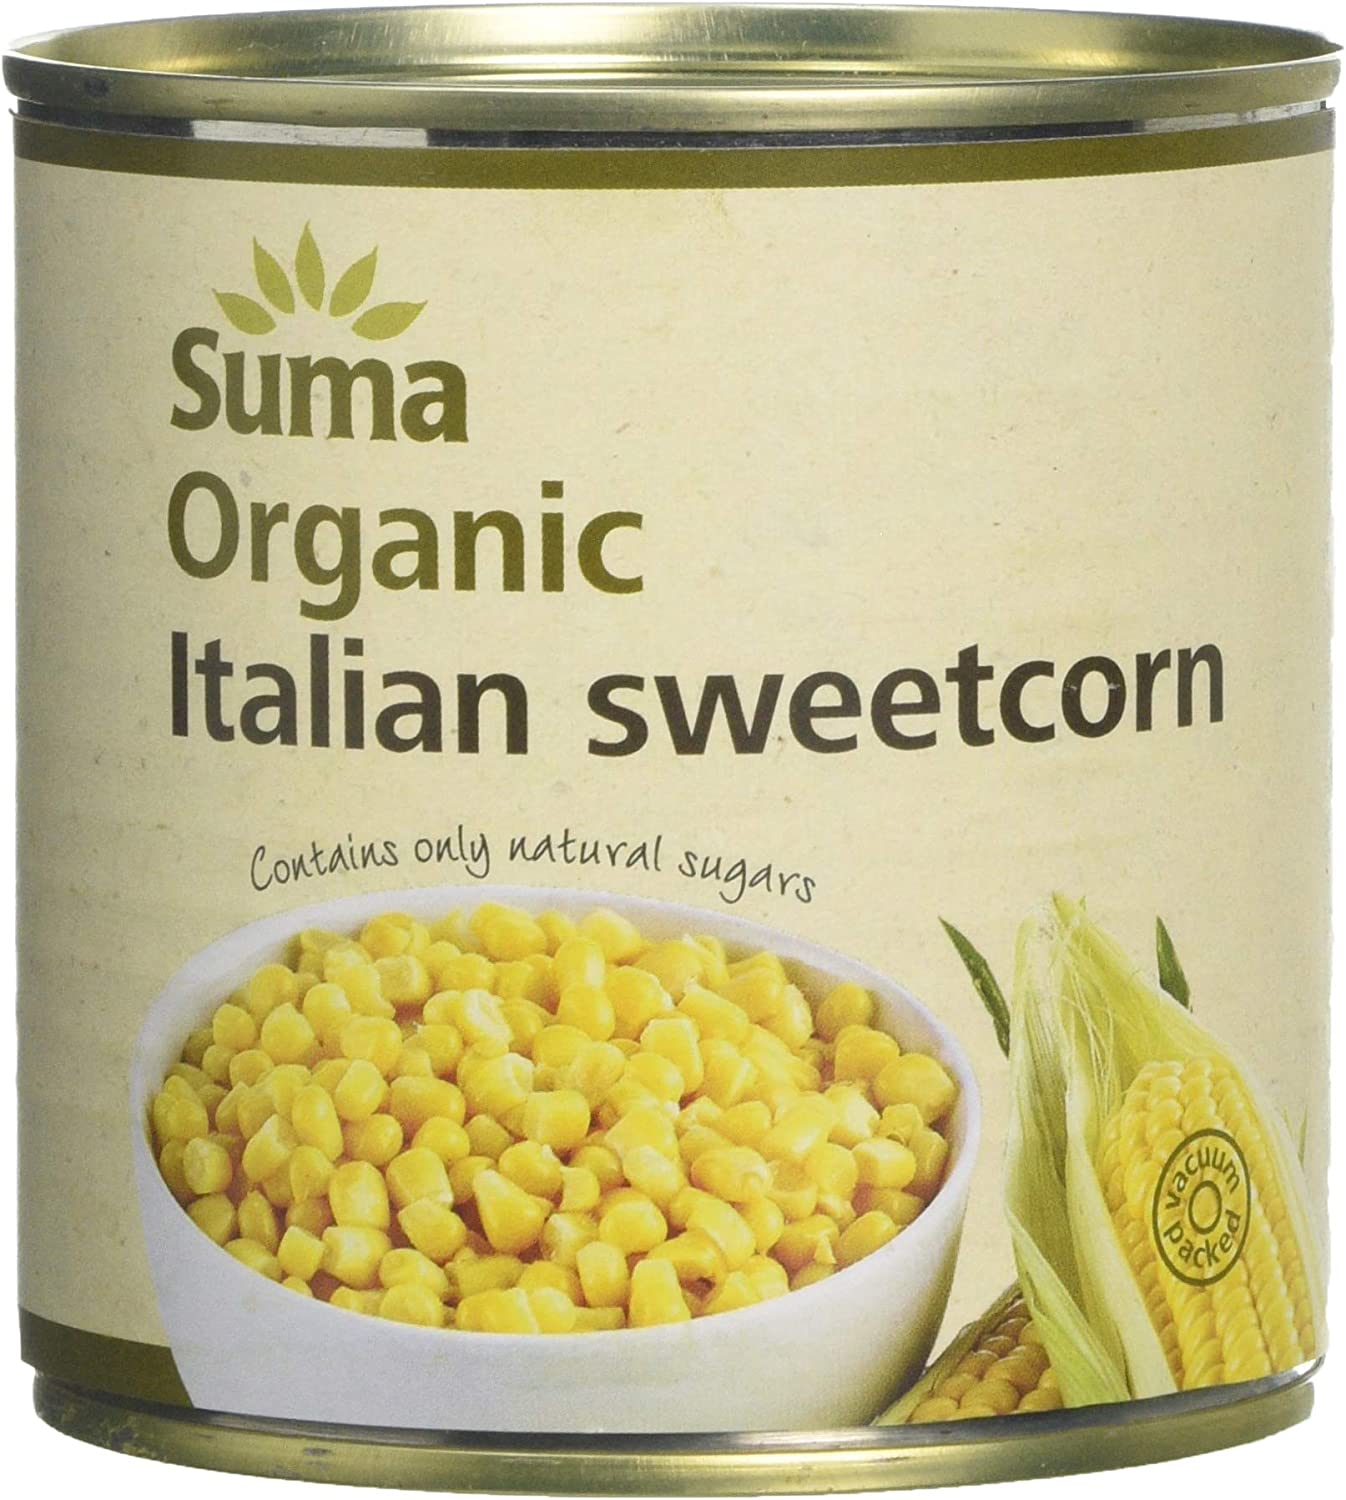 Suma Organic Italian Sweetcorn 340g (Pack of 12)